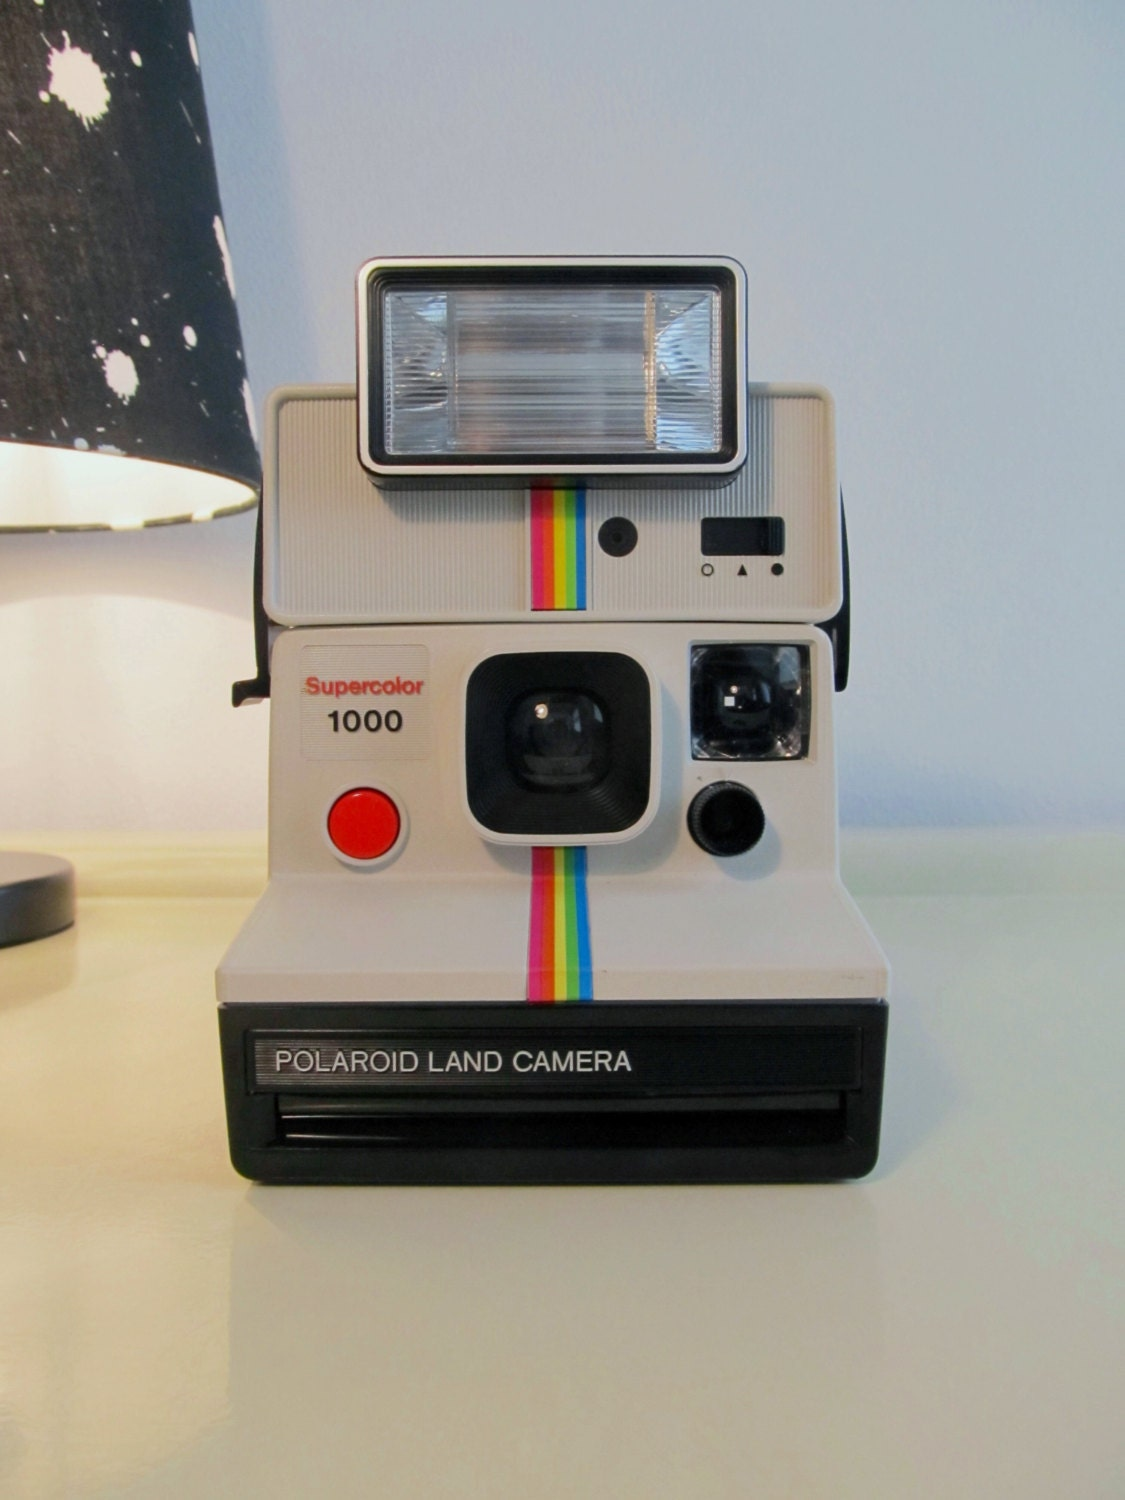 polaroid camera supercolor 1000 rainbow land camera sx 70 type. Black Bedroom Furniture Sets. Home Design Ideas